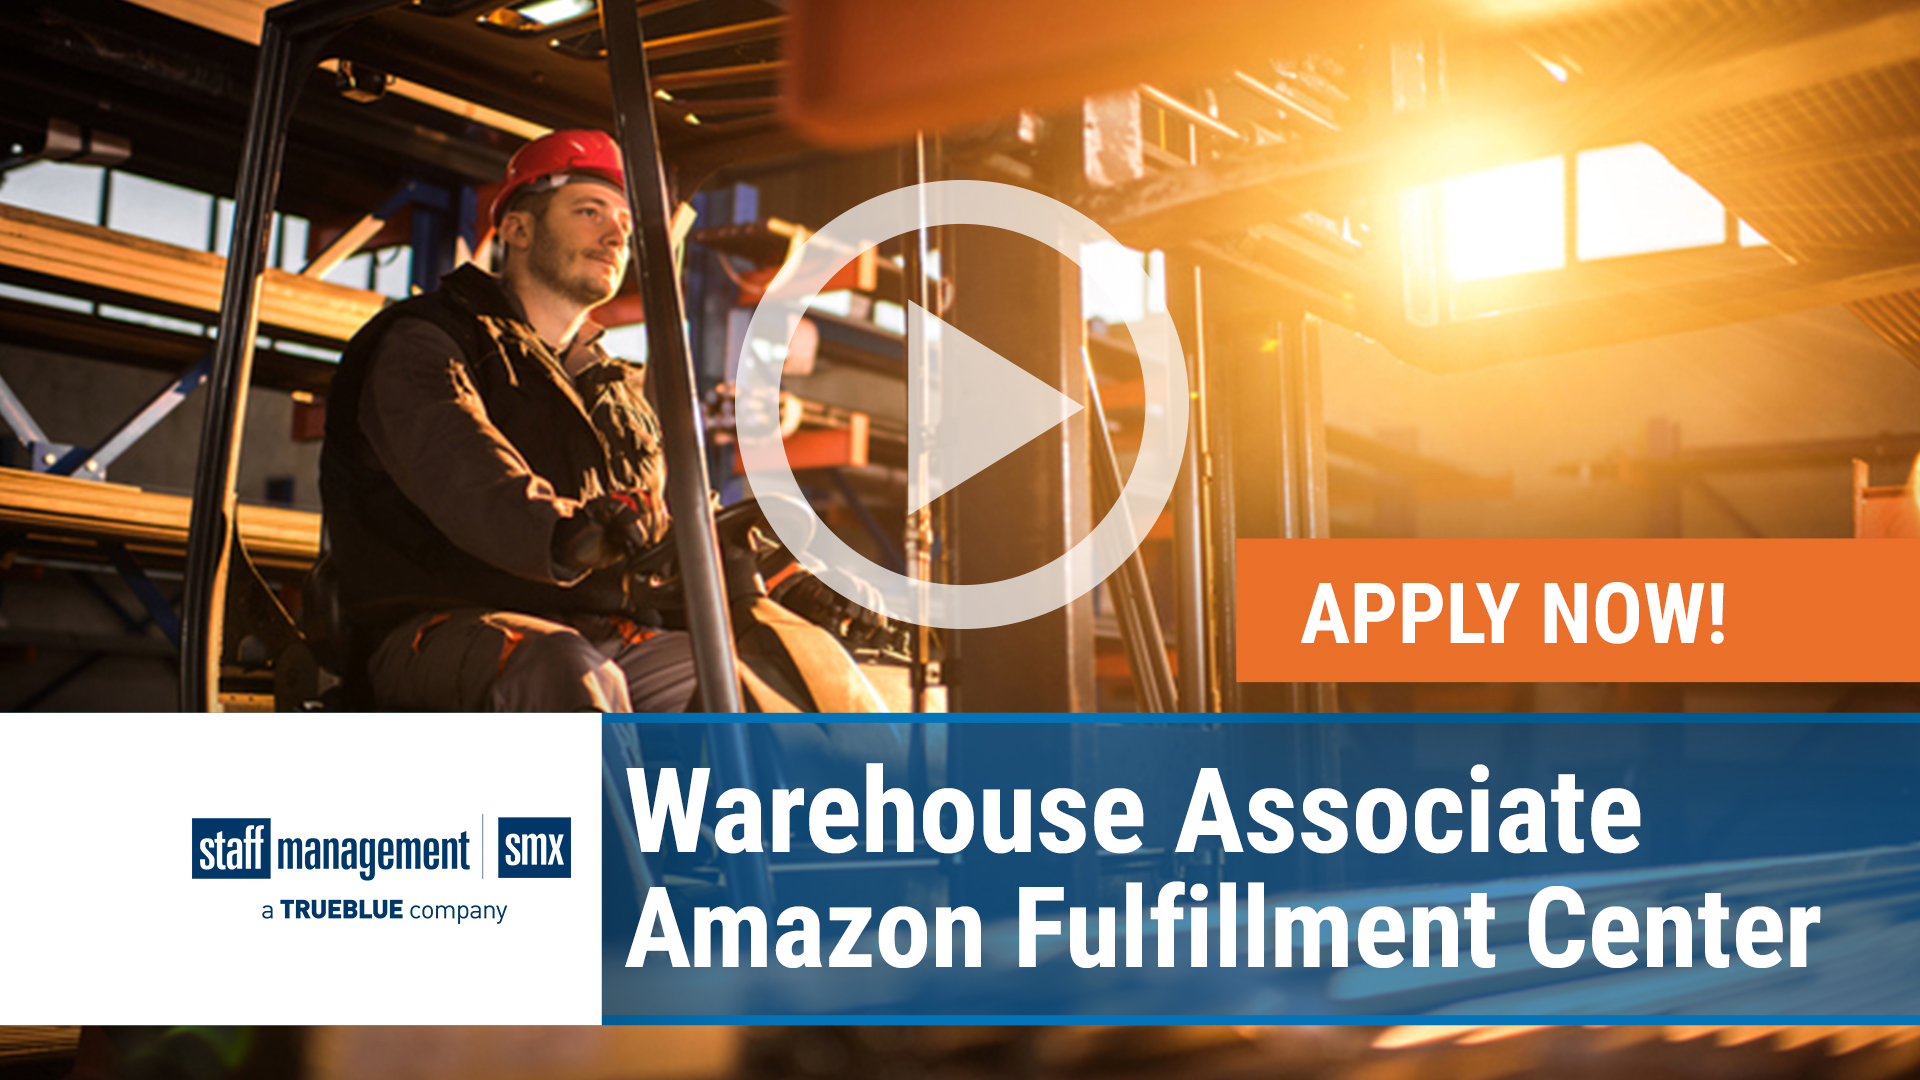 Watch our careers video for available job opening Warehouse Associate - Amazon Fulfillment Center in Vancouver & Toronto Metro, Canada